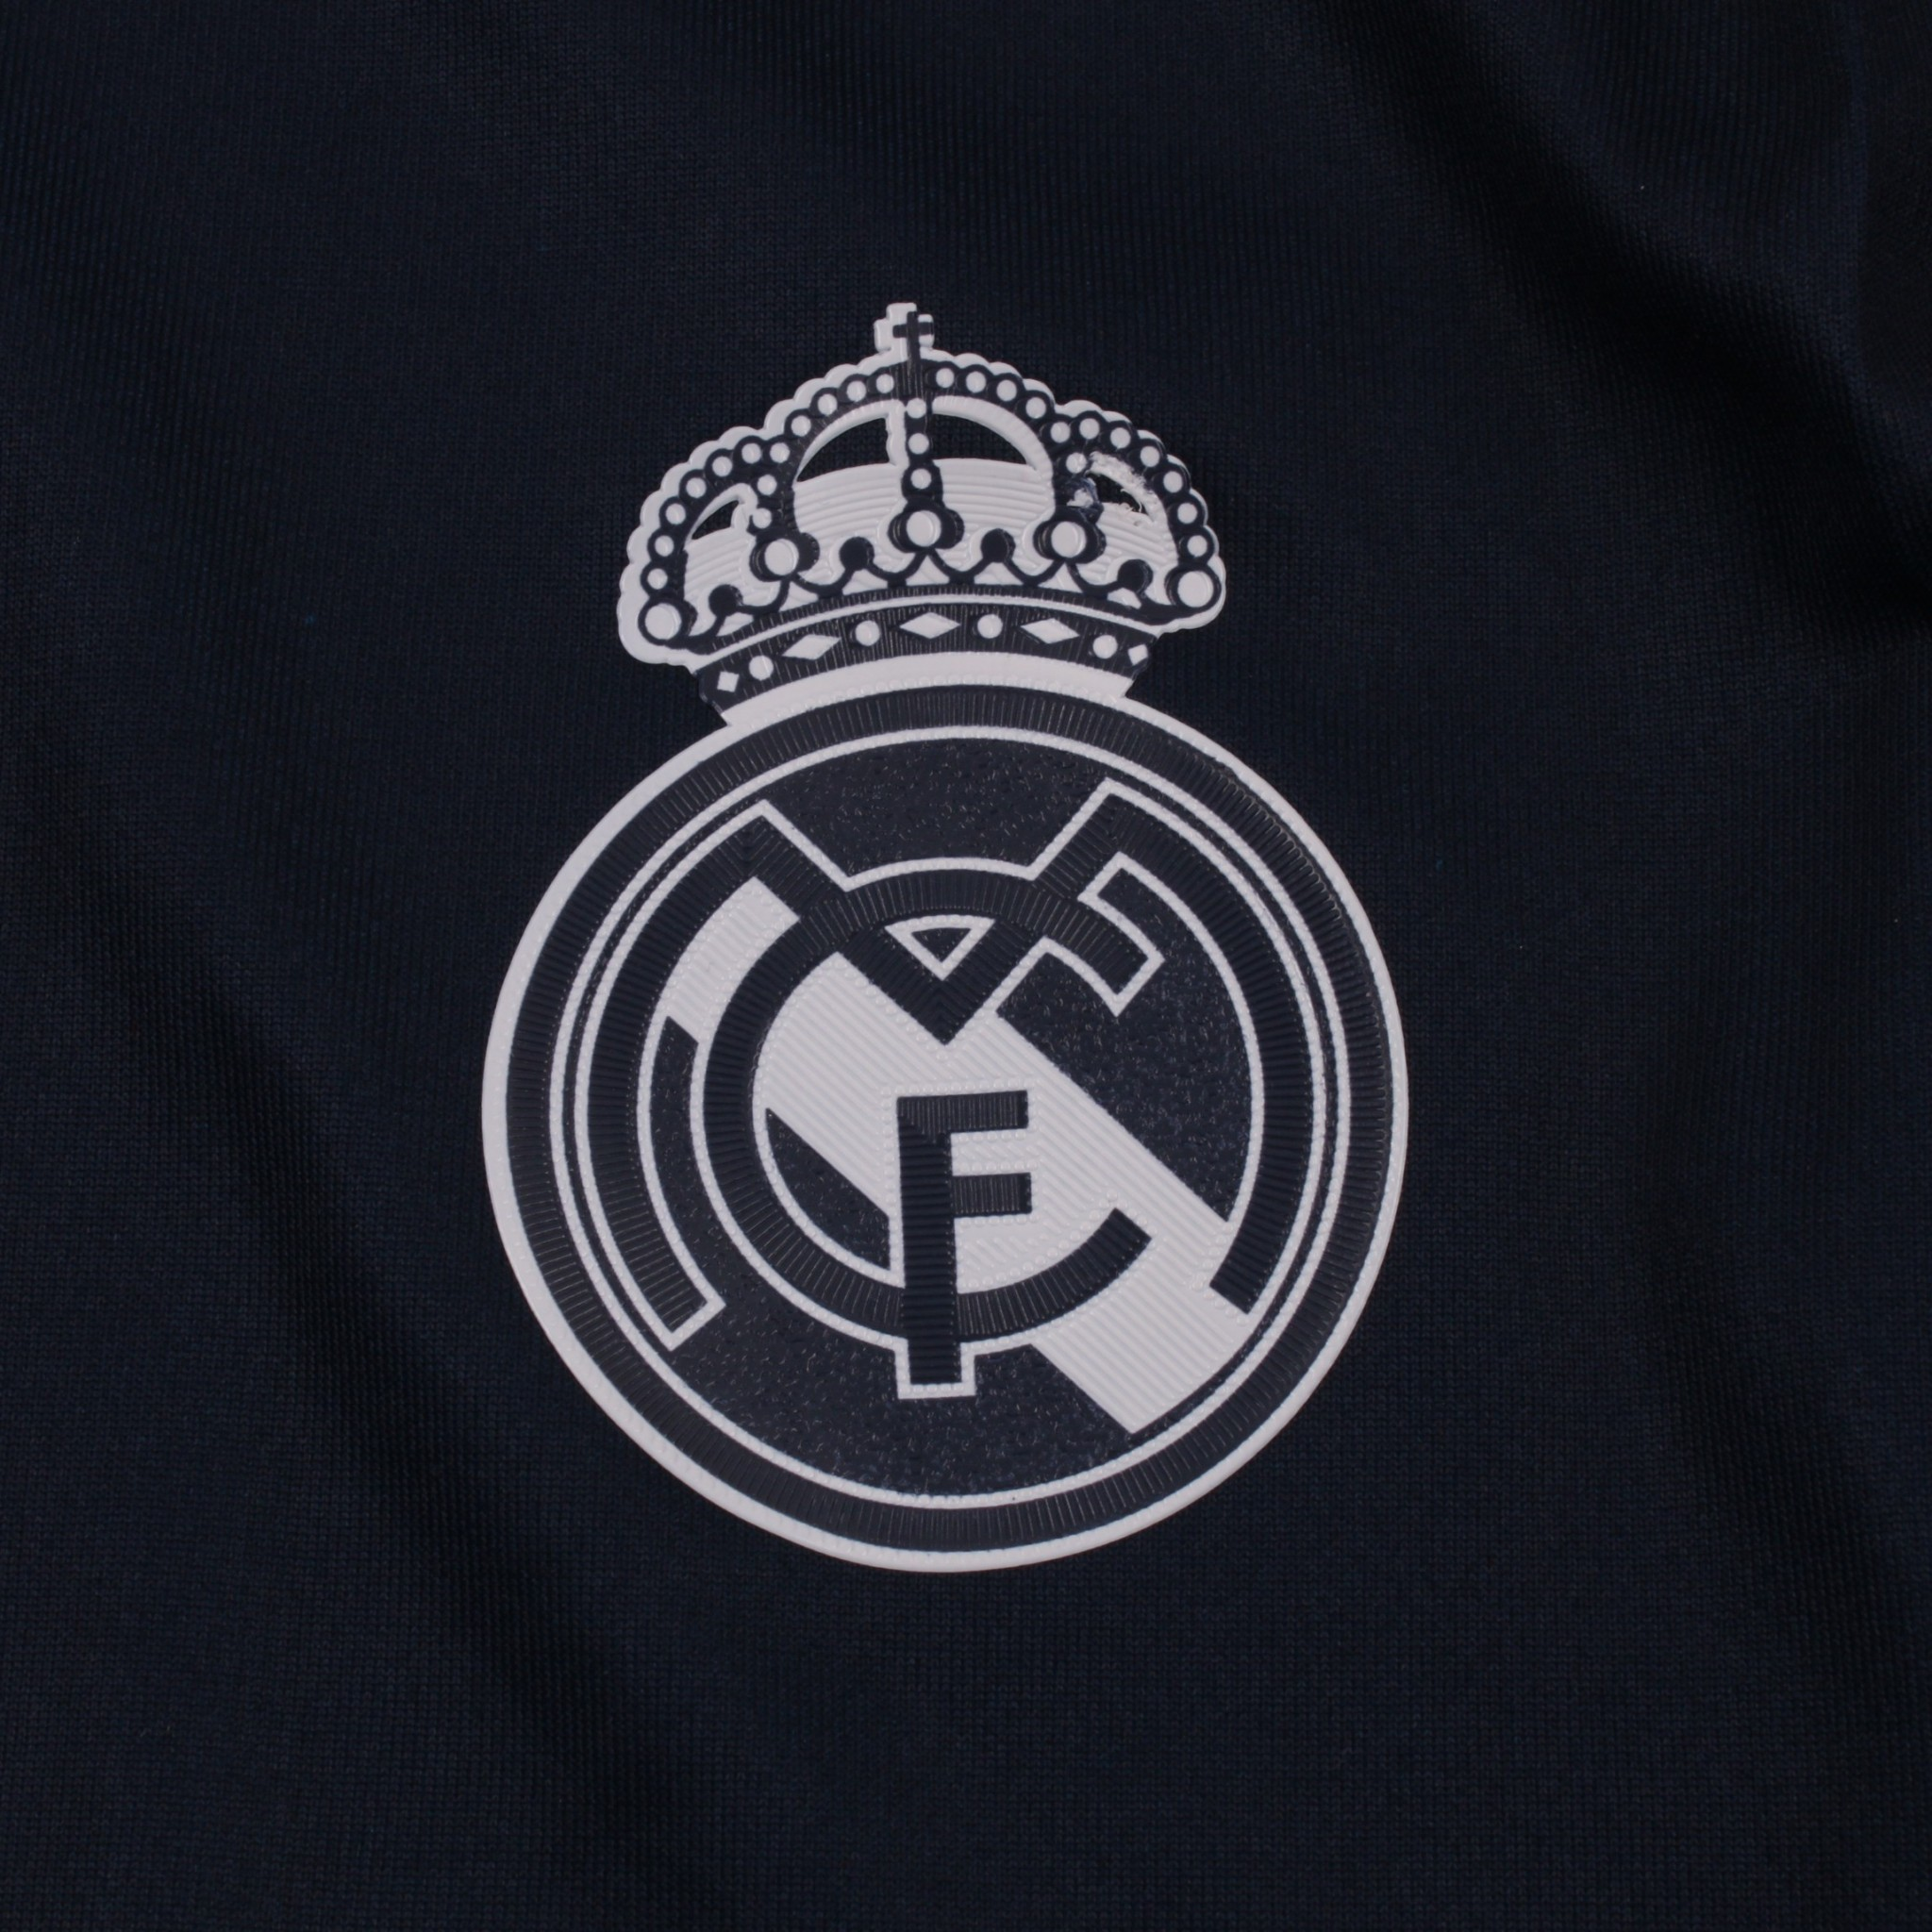 Madrid Logo – Tap to see more Real Madrid wallpaper!